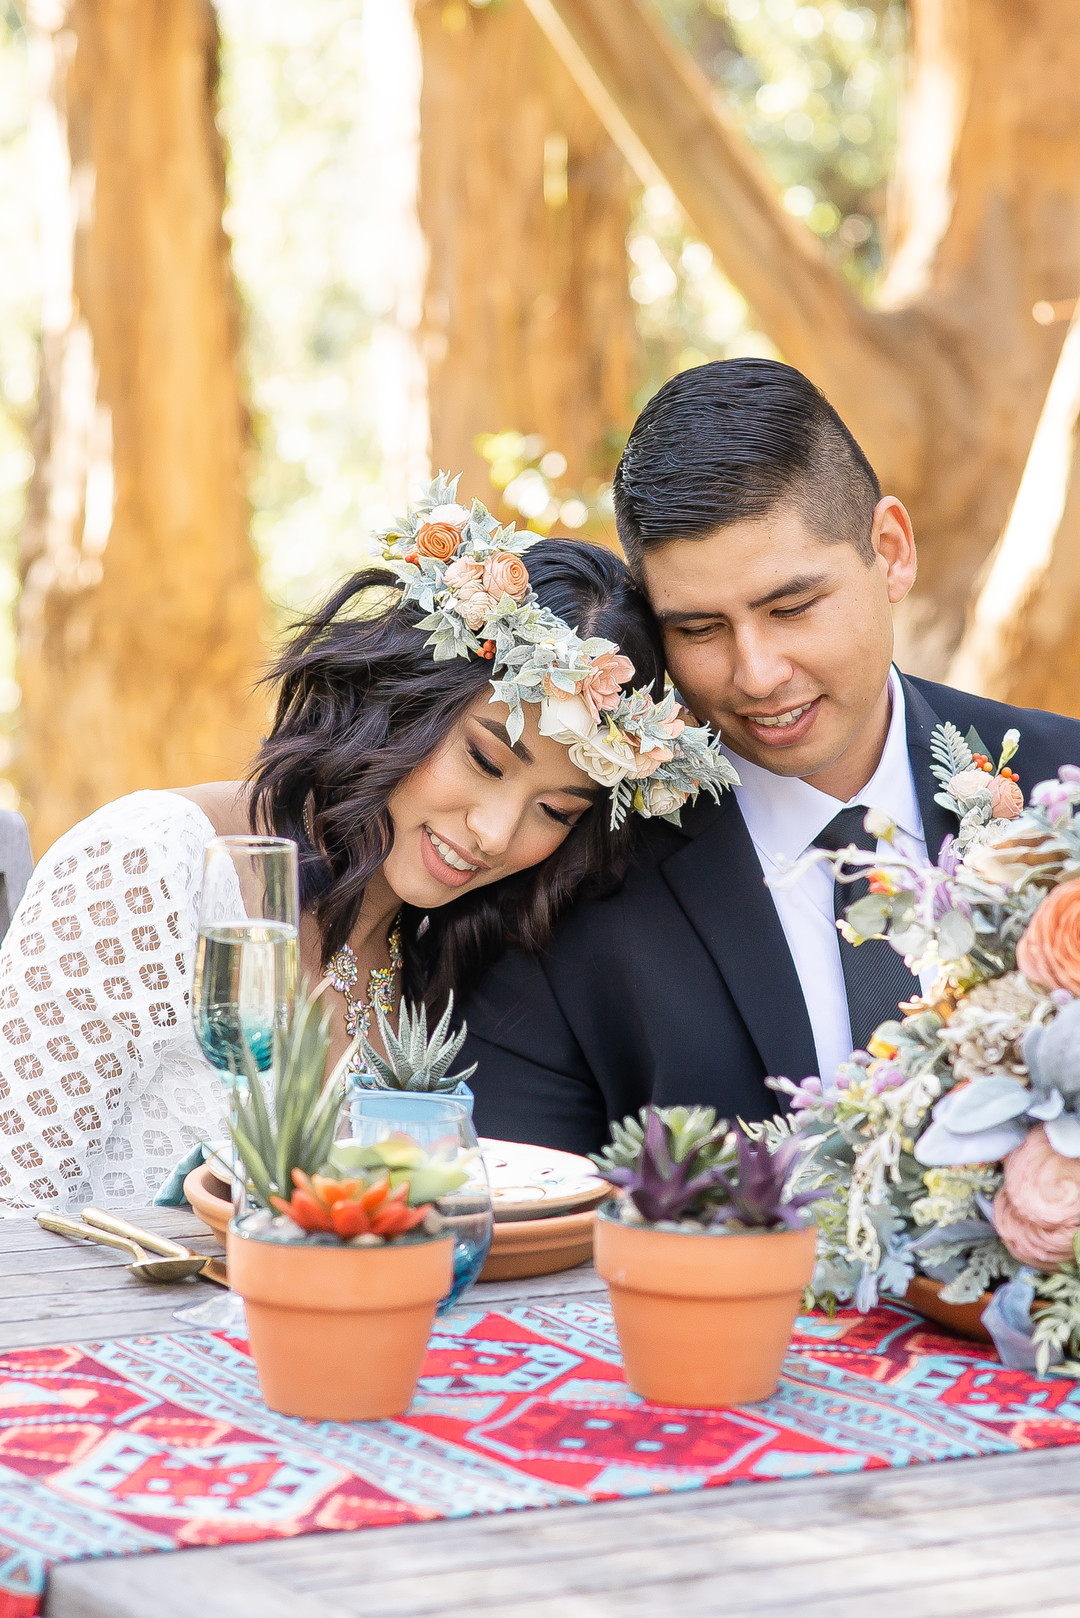 www.santabarbarawedding.com   Staci and Michael Photography   Montana de Oro State Park   EverAfter Wood Floral   Pier 1 Imports   Makeup by Madisen Wickliffe   Express   Bride and groom